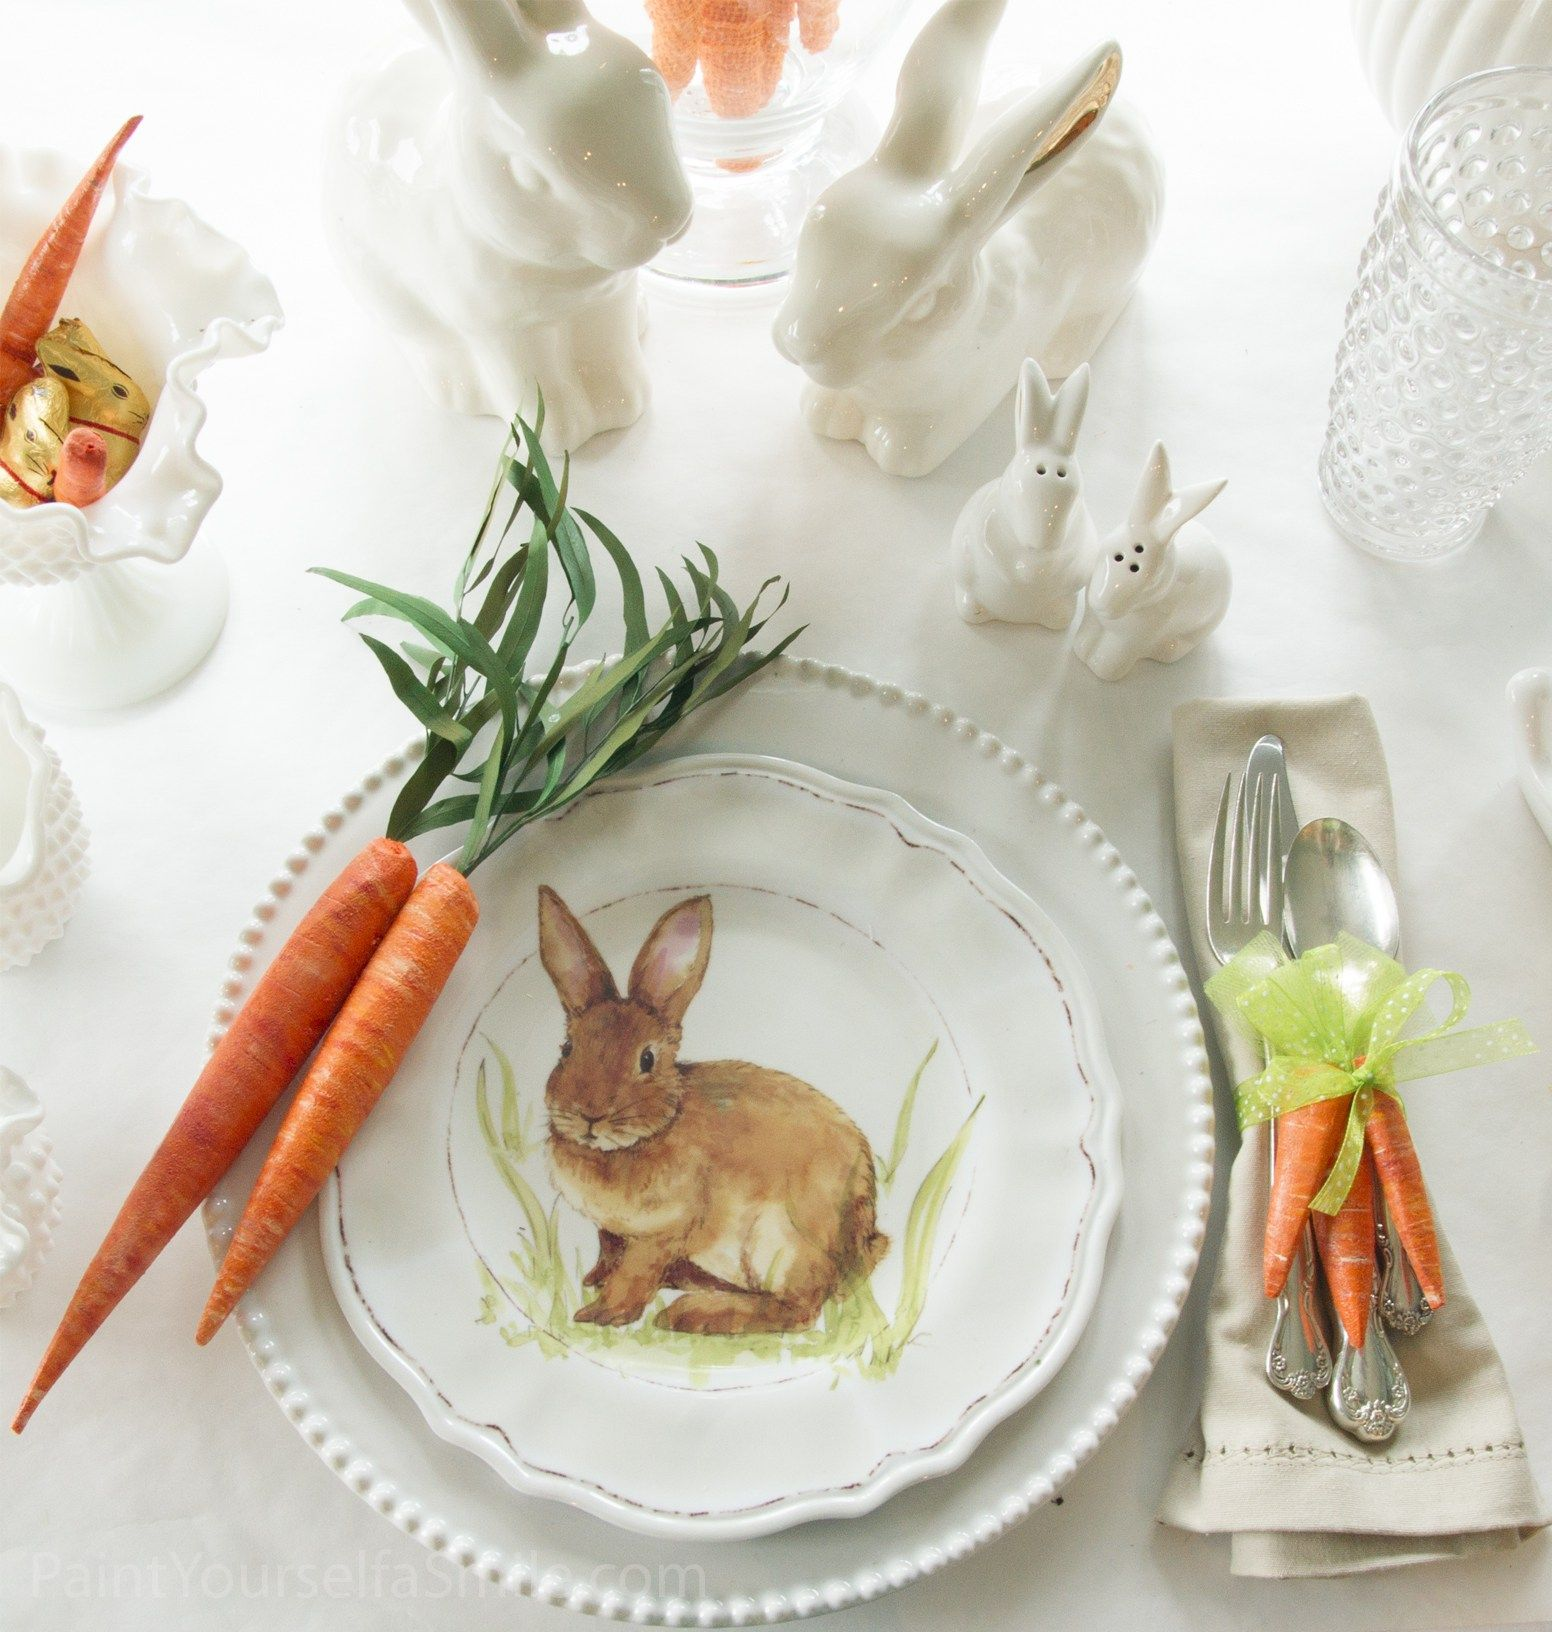 DIY Easter Décor & Napkin rings - These napkin rings are ADORABLE!